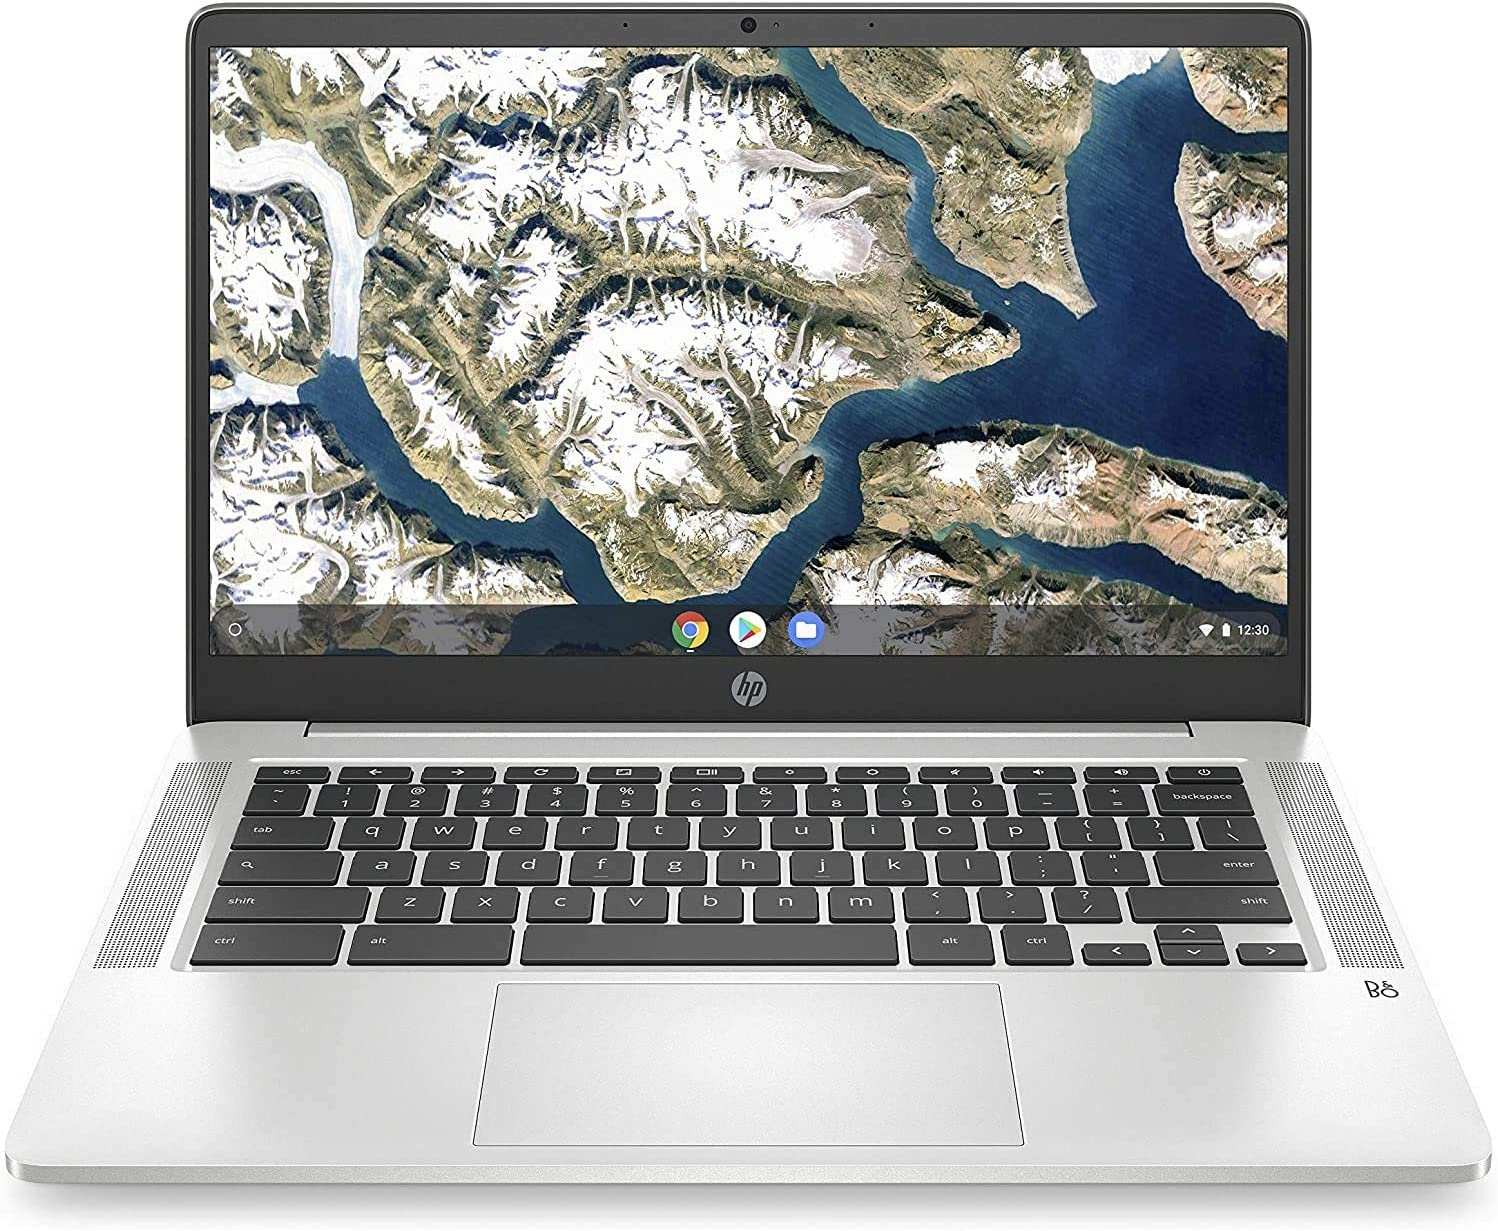 HP Chromebook 14-na Intel Celeron N4000 4GB 64GB eMMC 14-inch Full HD WLED Chrome OS